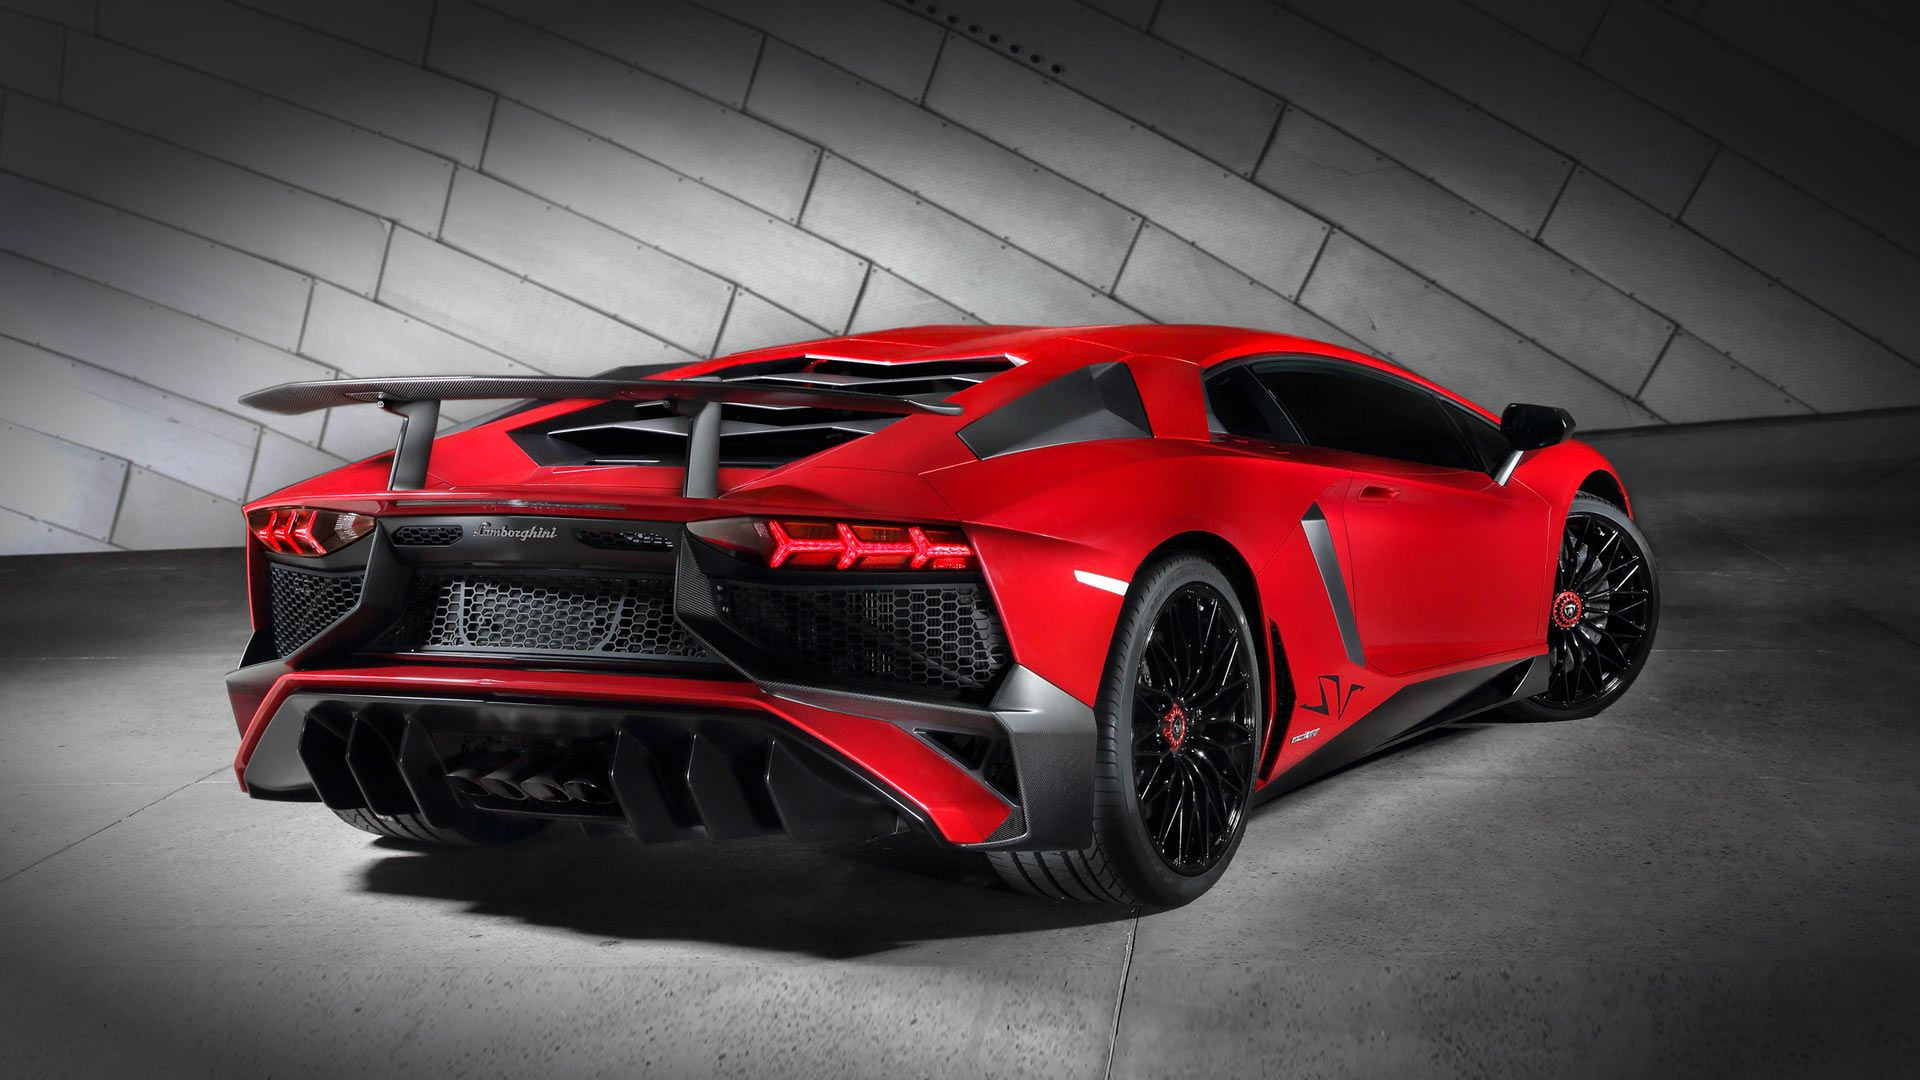 The Superveloce was developed as the Lamborghini with the sportiest DNA, thanks to an enhanced V12 aspirated engine, engineering solutions geared to the most extreme lightness and an array of innovative technologies such as magneto-rheological pushrod suspension and Lamborghini Dynamic Steering.